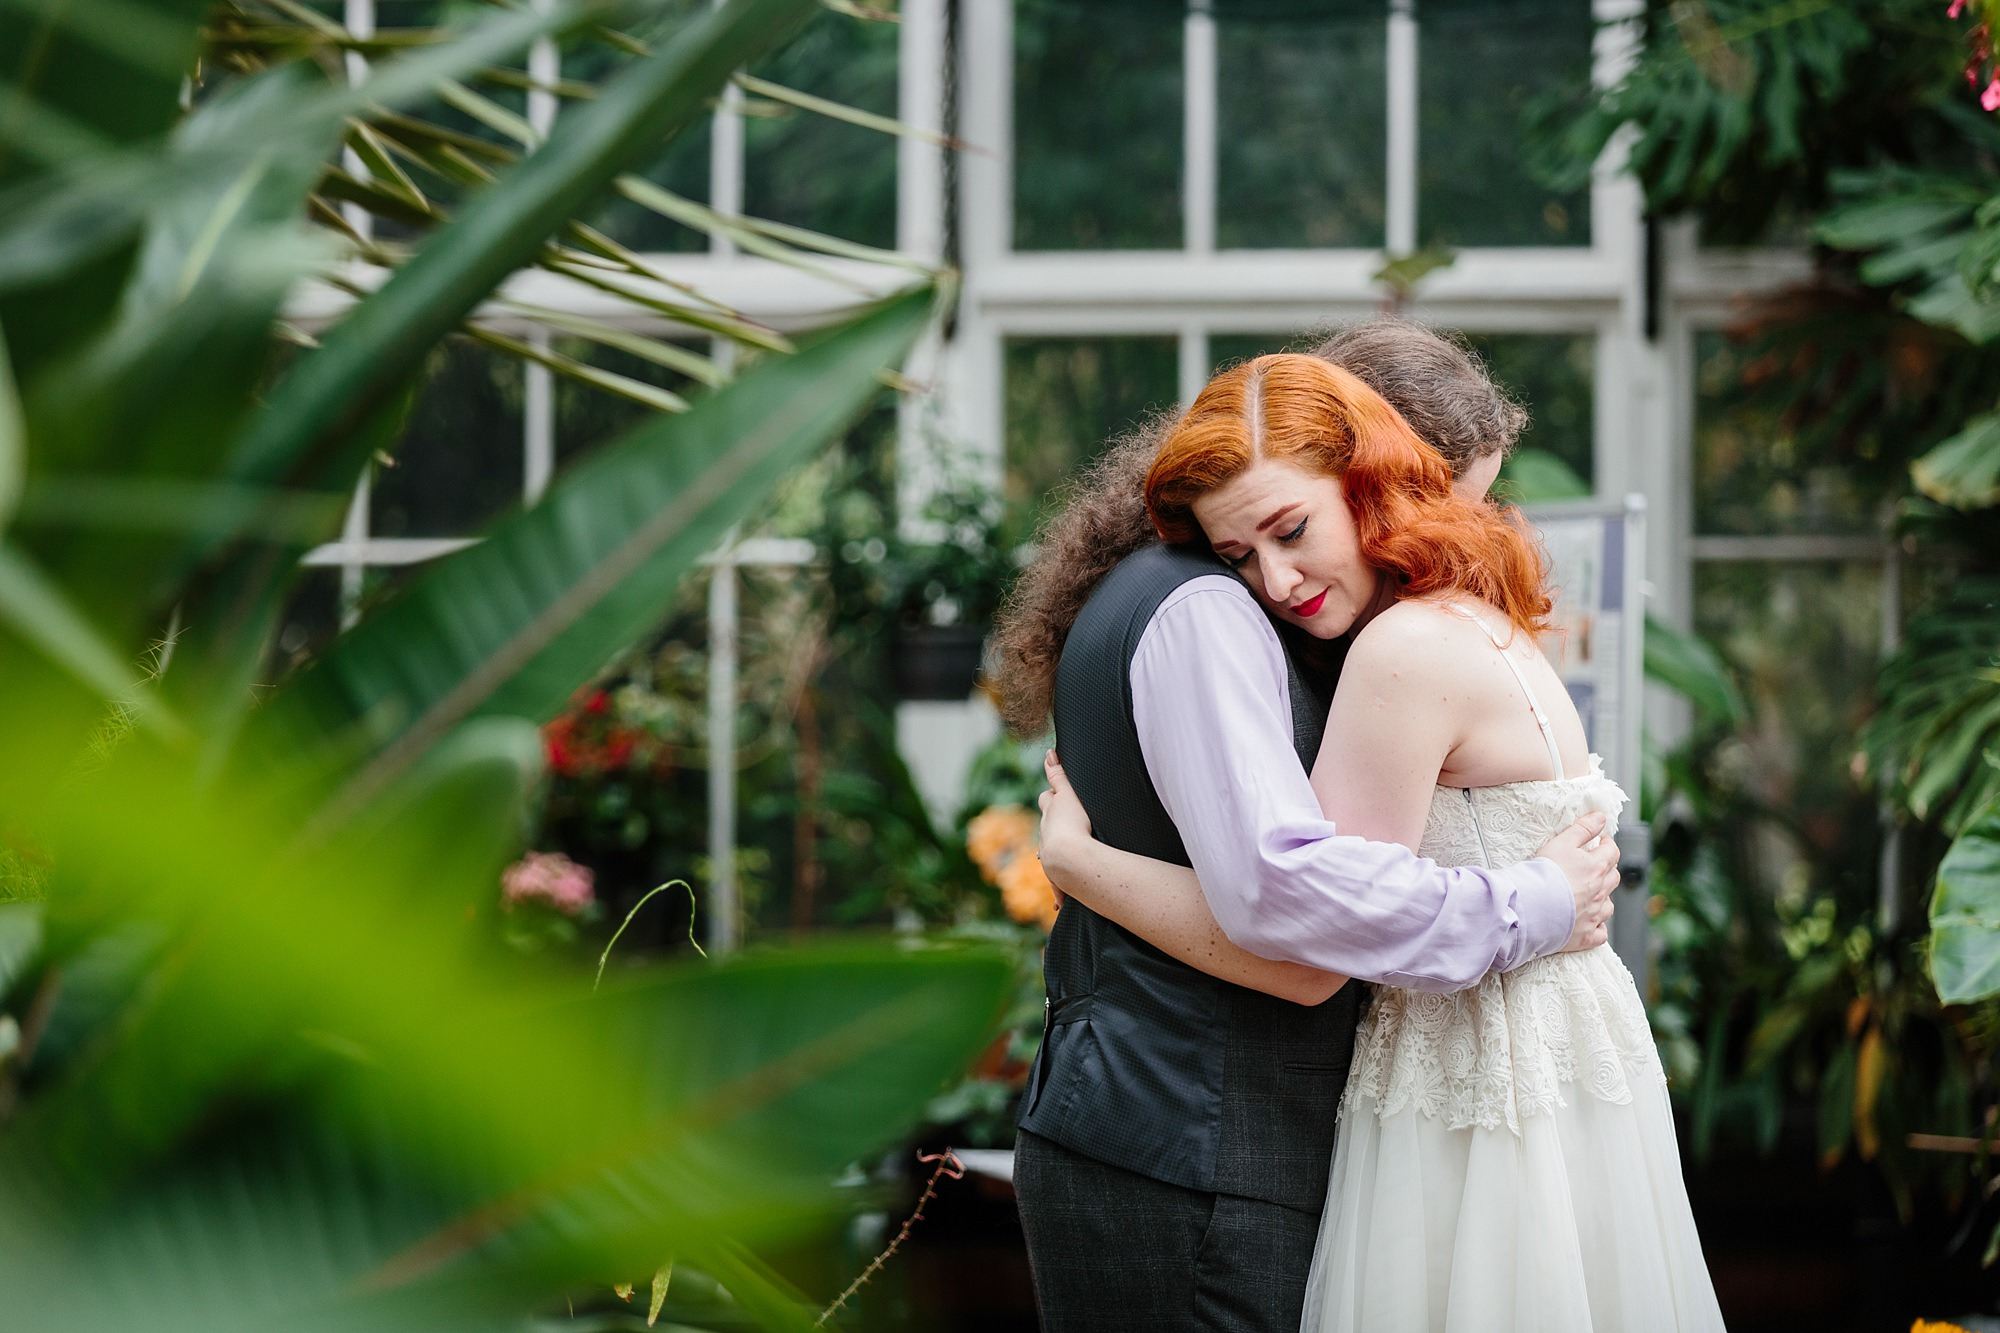 tropical wedding shoot bride and groom in a conservatory